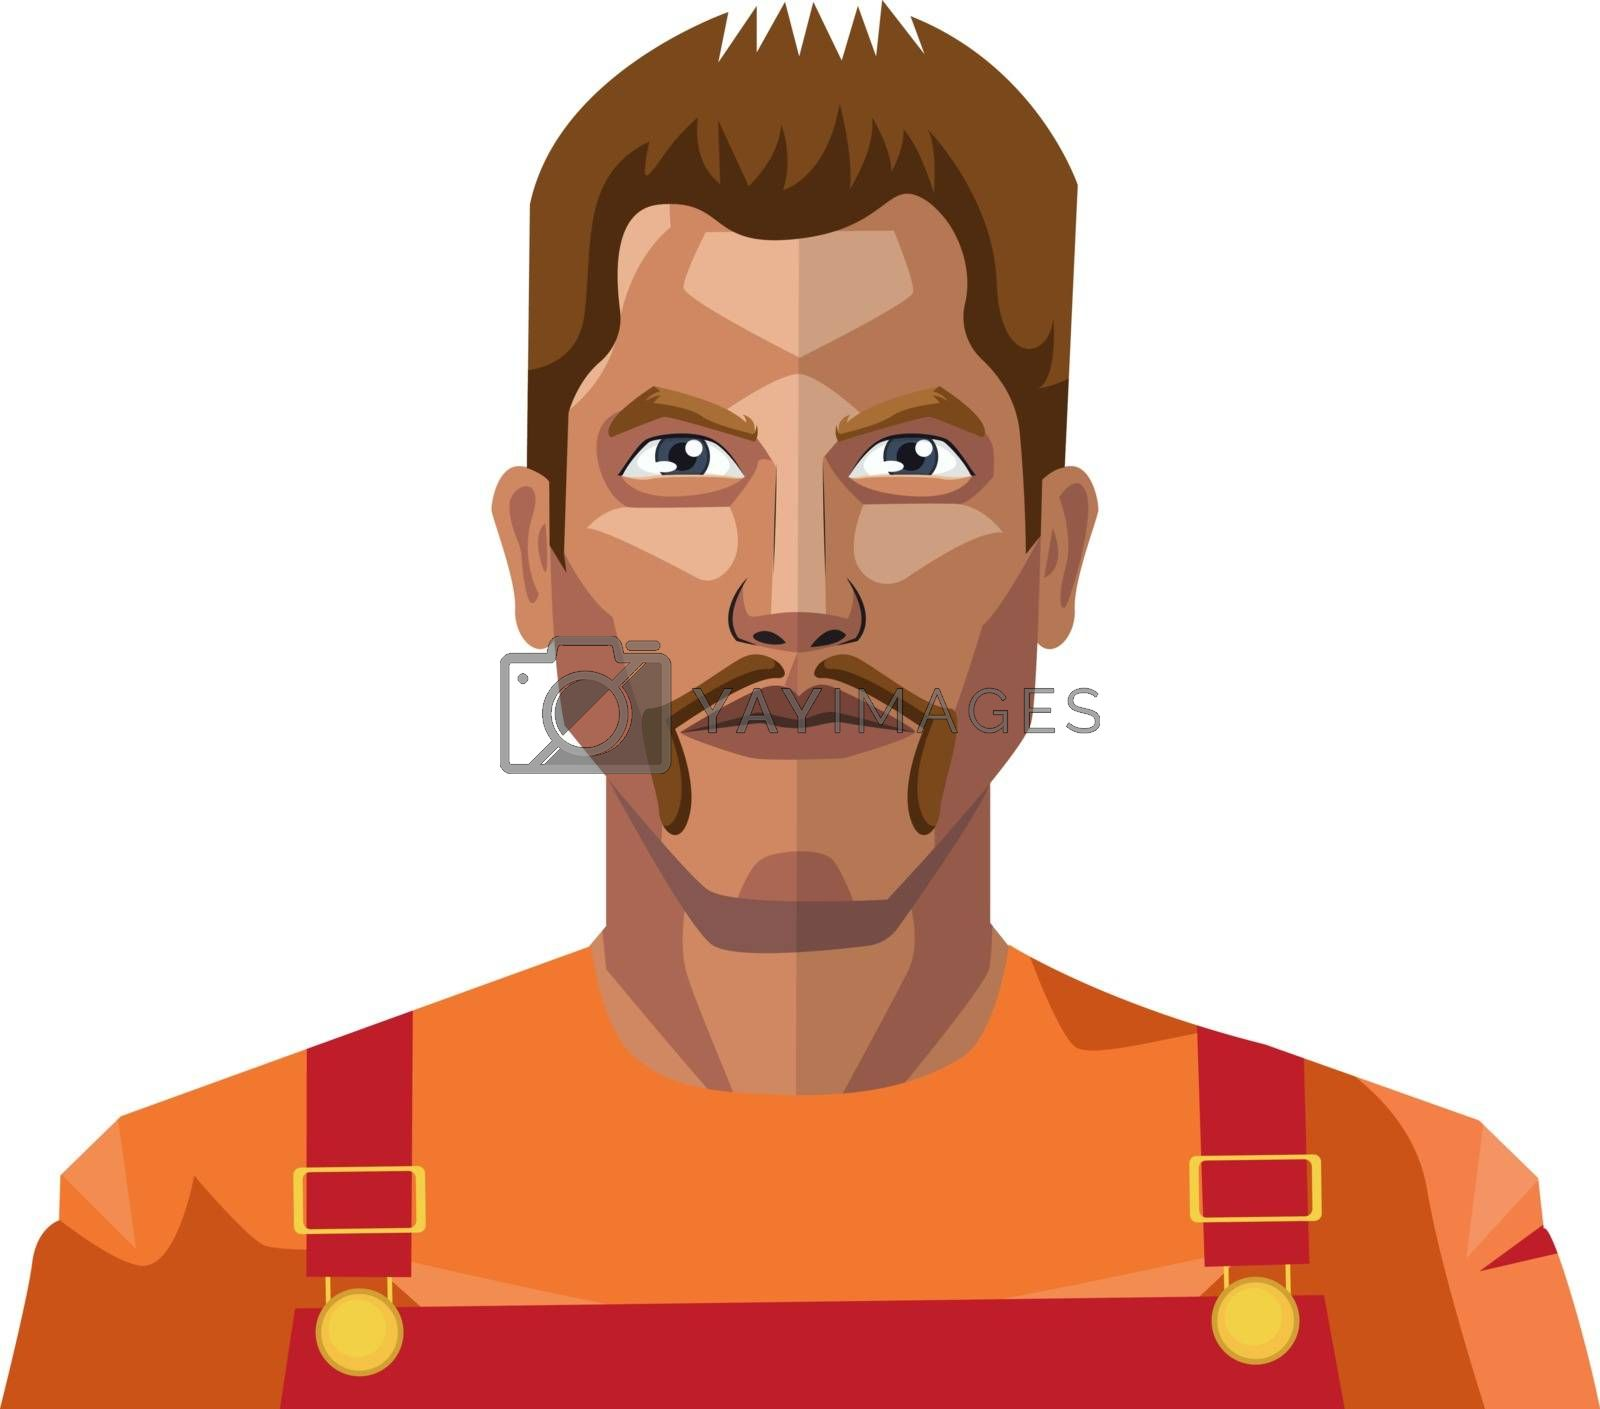 Royalty free image of Worker with mustaches illustration vector on white background by Morphart